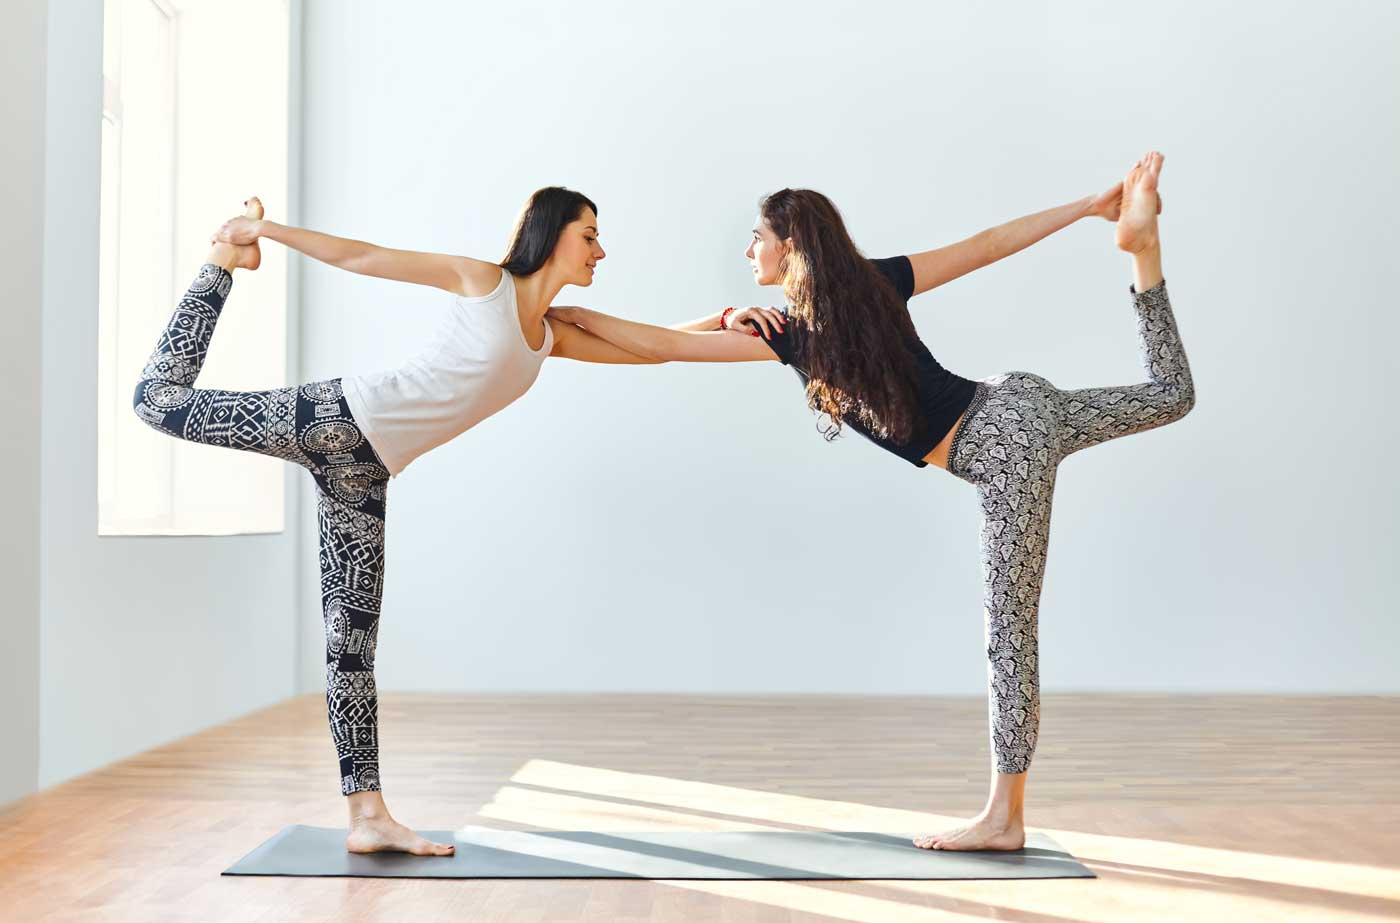 Partner Up For Yoga Pair Poses! - Yogamoo™